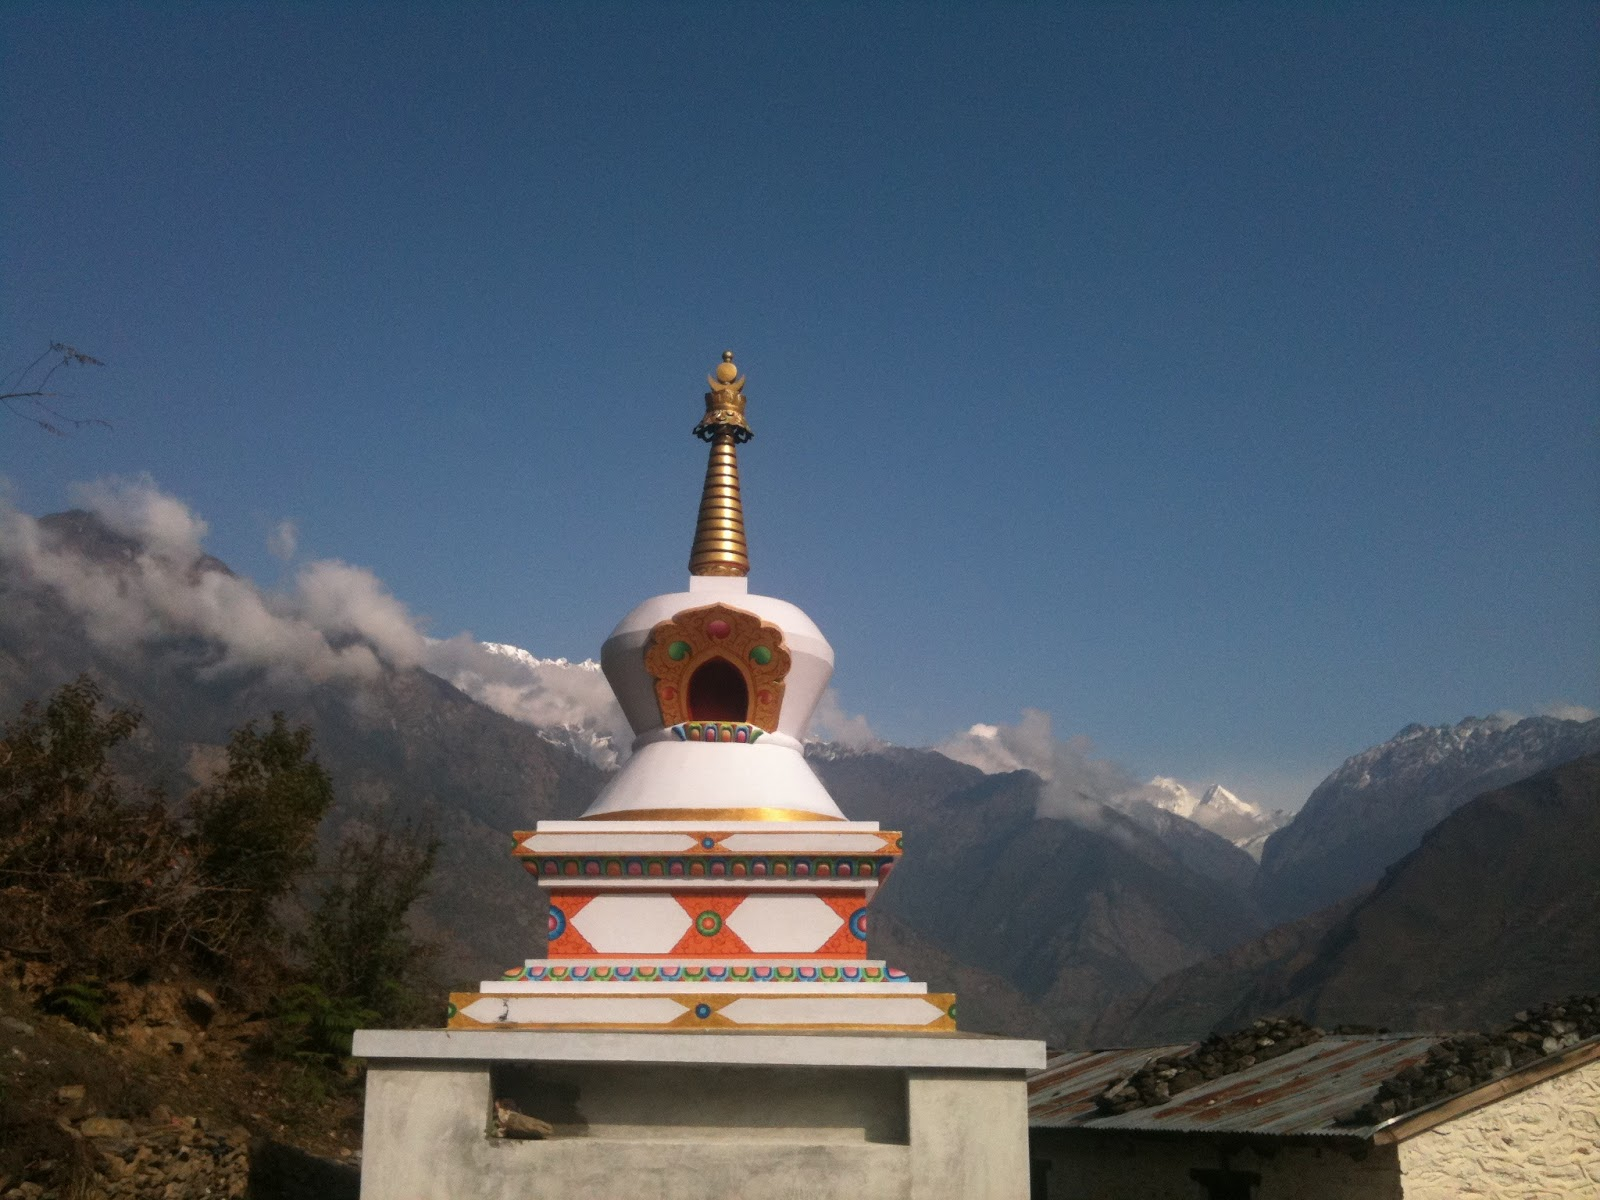 Holy objects sponsored in rural areas of Nepal